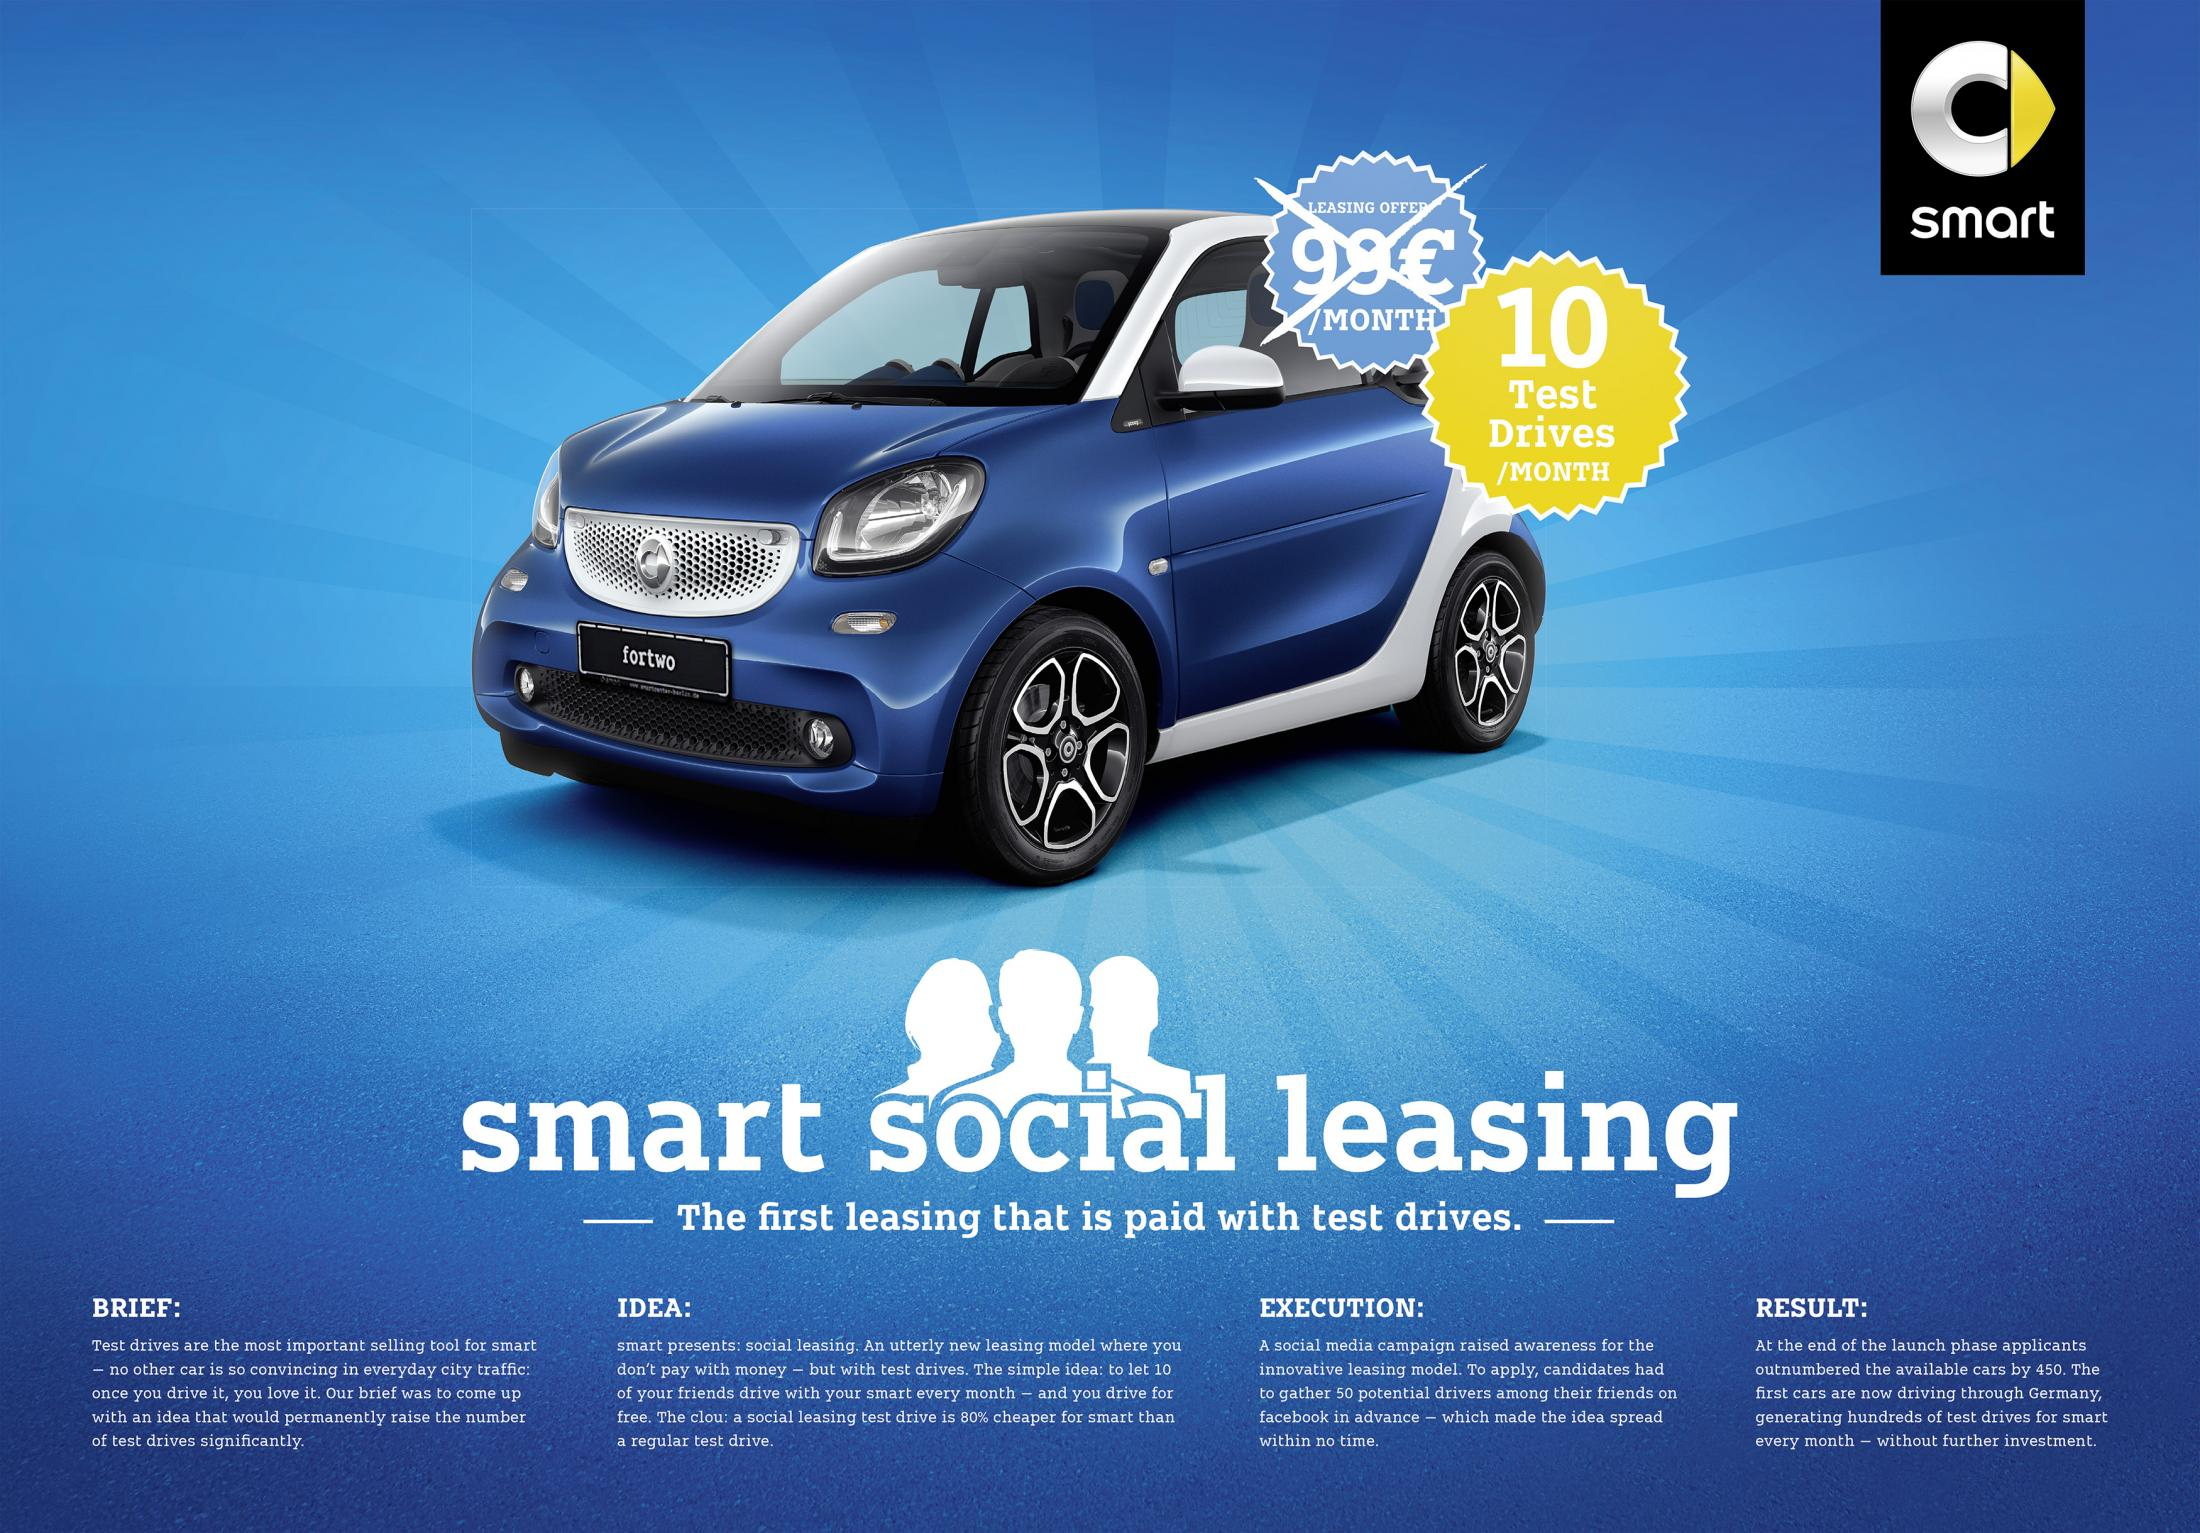 Image Media for smart social leasing